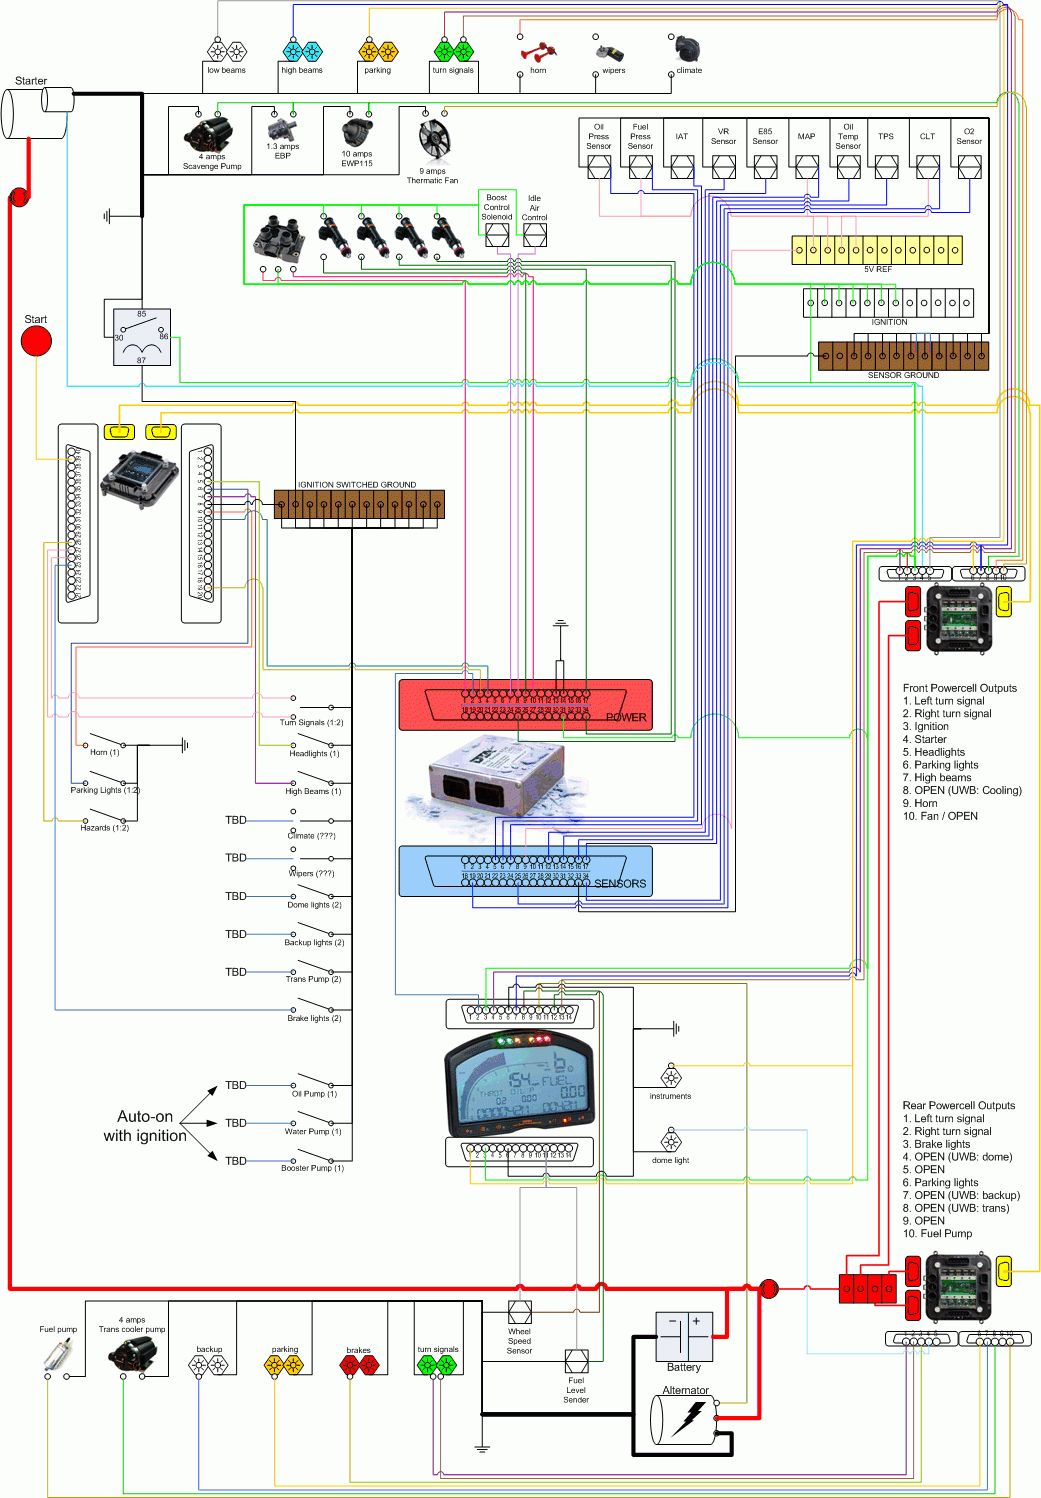 fire truck wiring diagram free picture schematic automotive wiring diagram  with images  trailer wiring diagram  automotive wiring diagram  with images